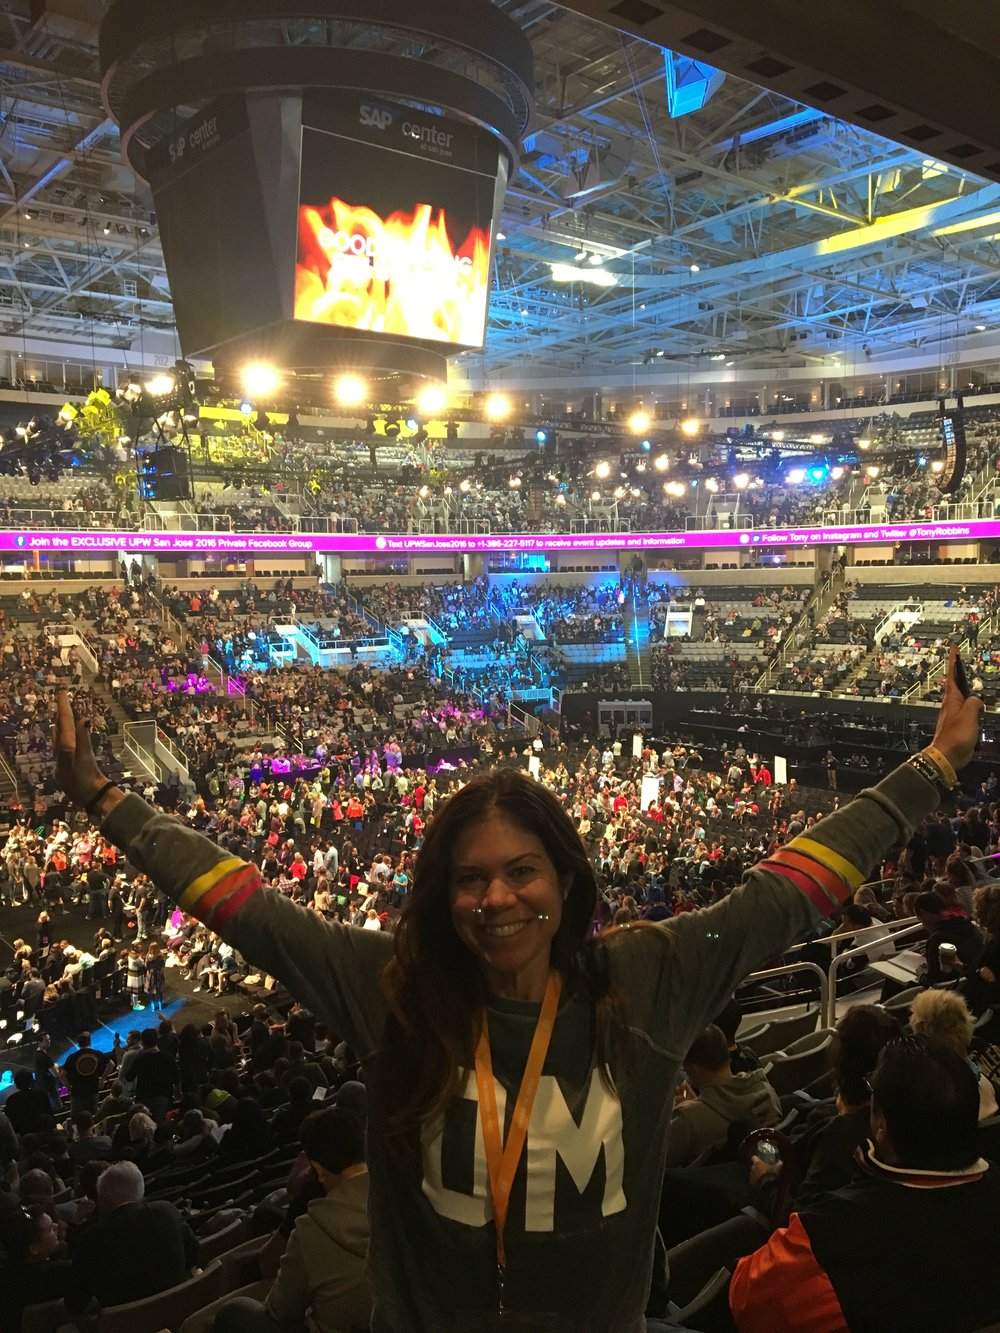 Still buzzing!  Thrilled with first day and so excited for the next. Tired but so energized by the crowd of people from 52 countries and all different demographics. The energy of love and joy was absolutely beaming and radiating from everyone.   I loved the DJ and when you have that many singing and dancing it is a giant party. I totally soaked up this atmosphere and am still buzzing today!